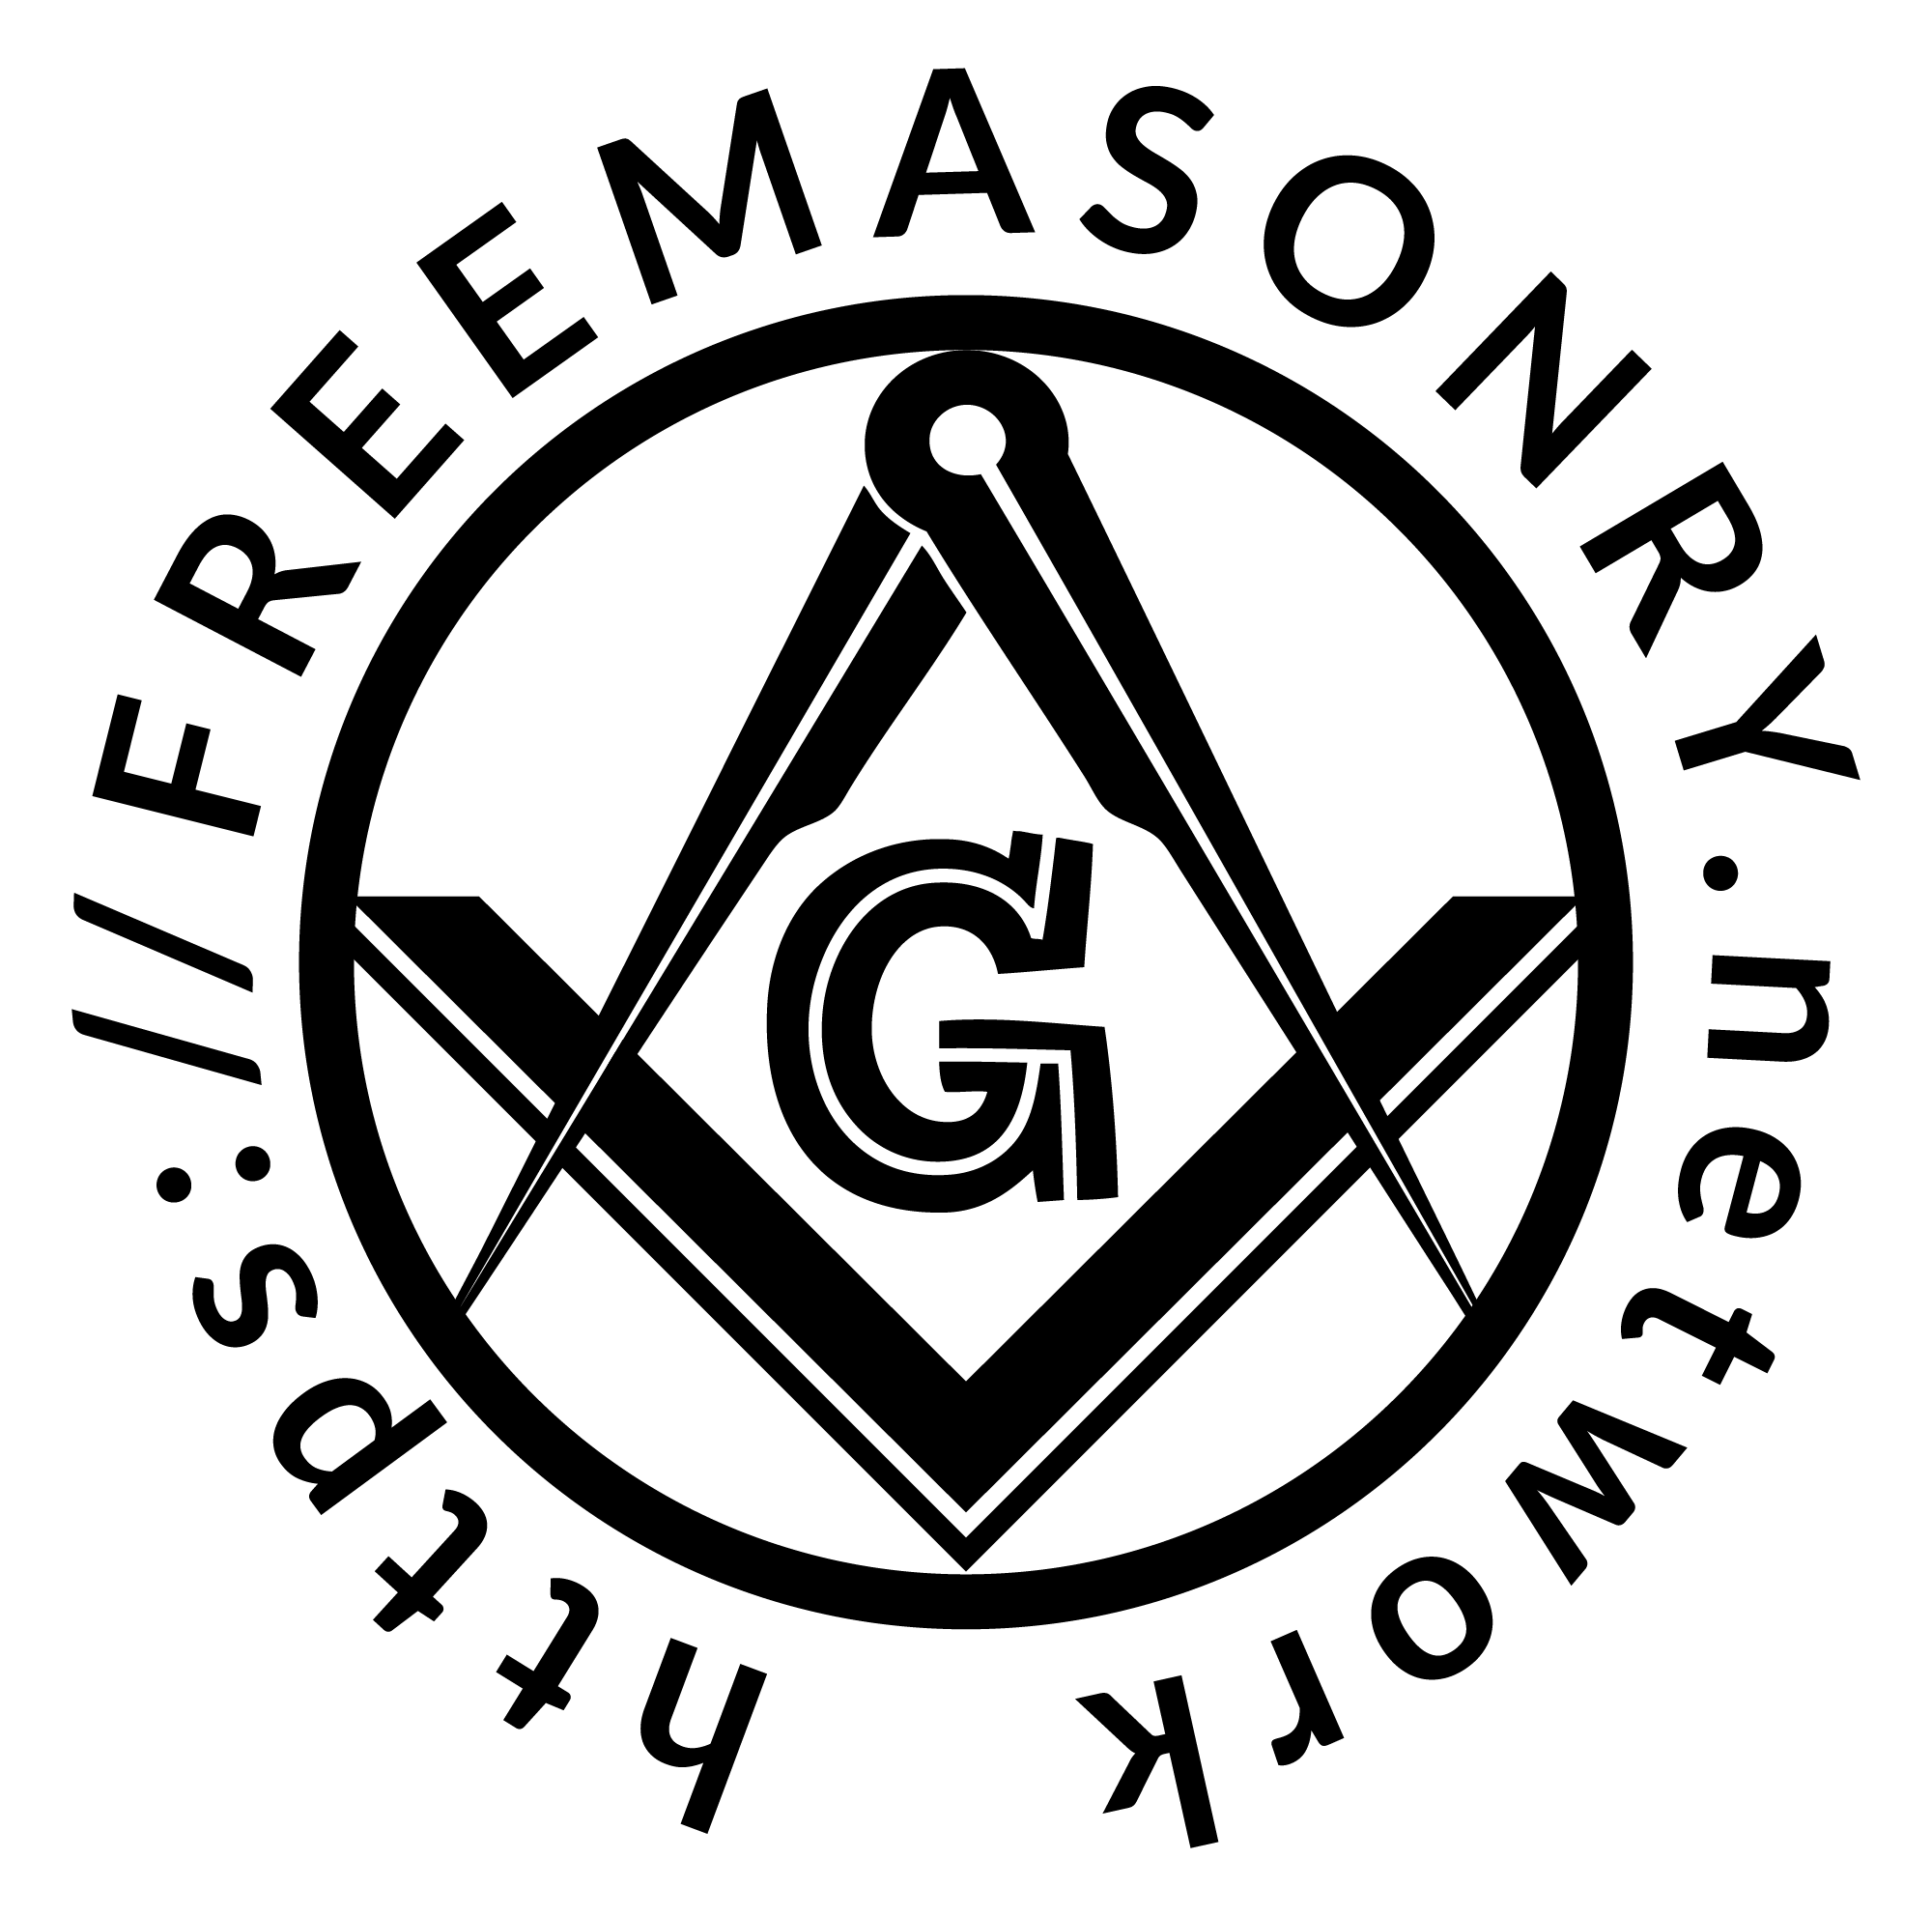 HISTORY OF ANTI-MASONRY